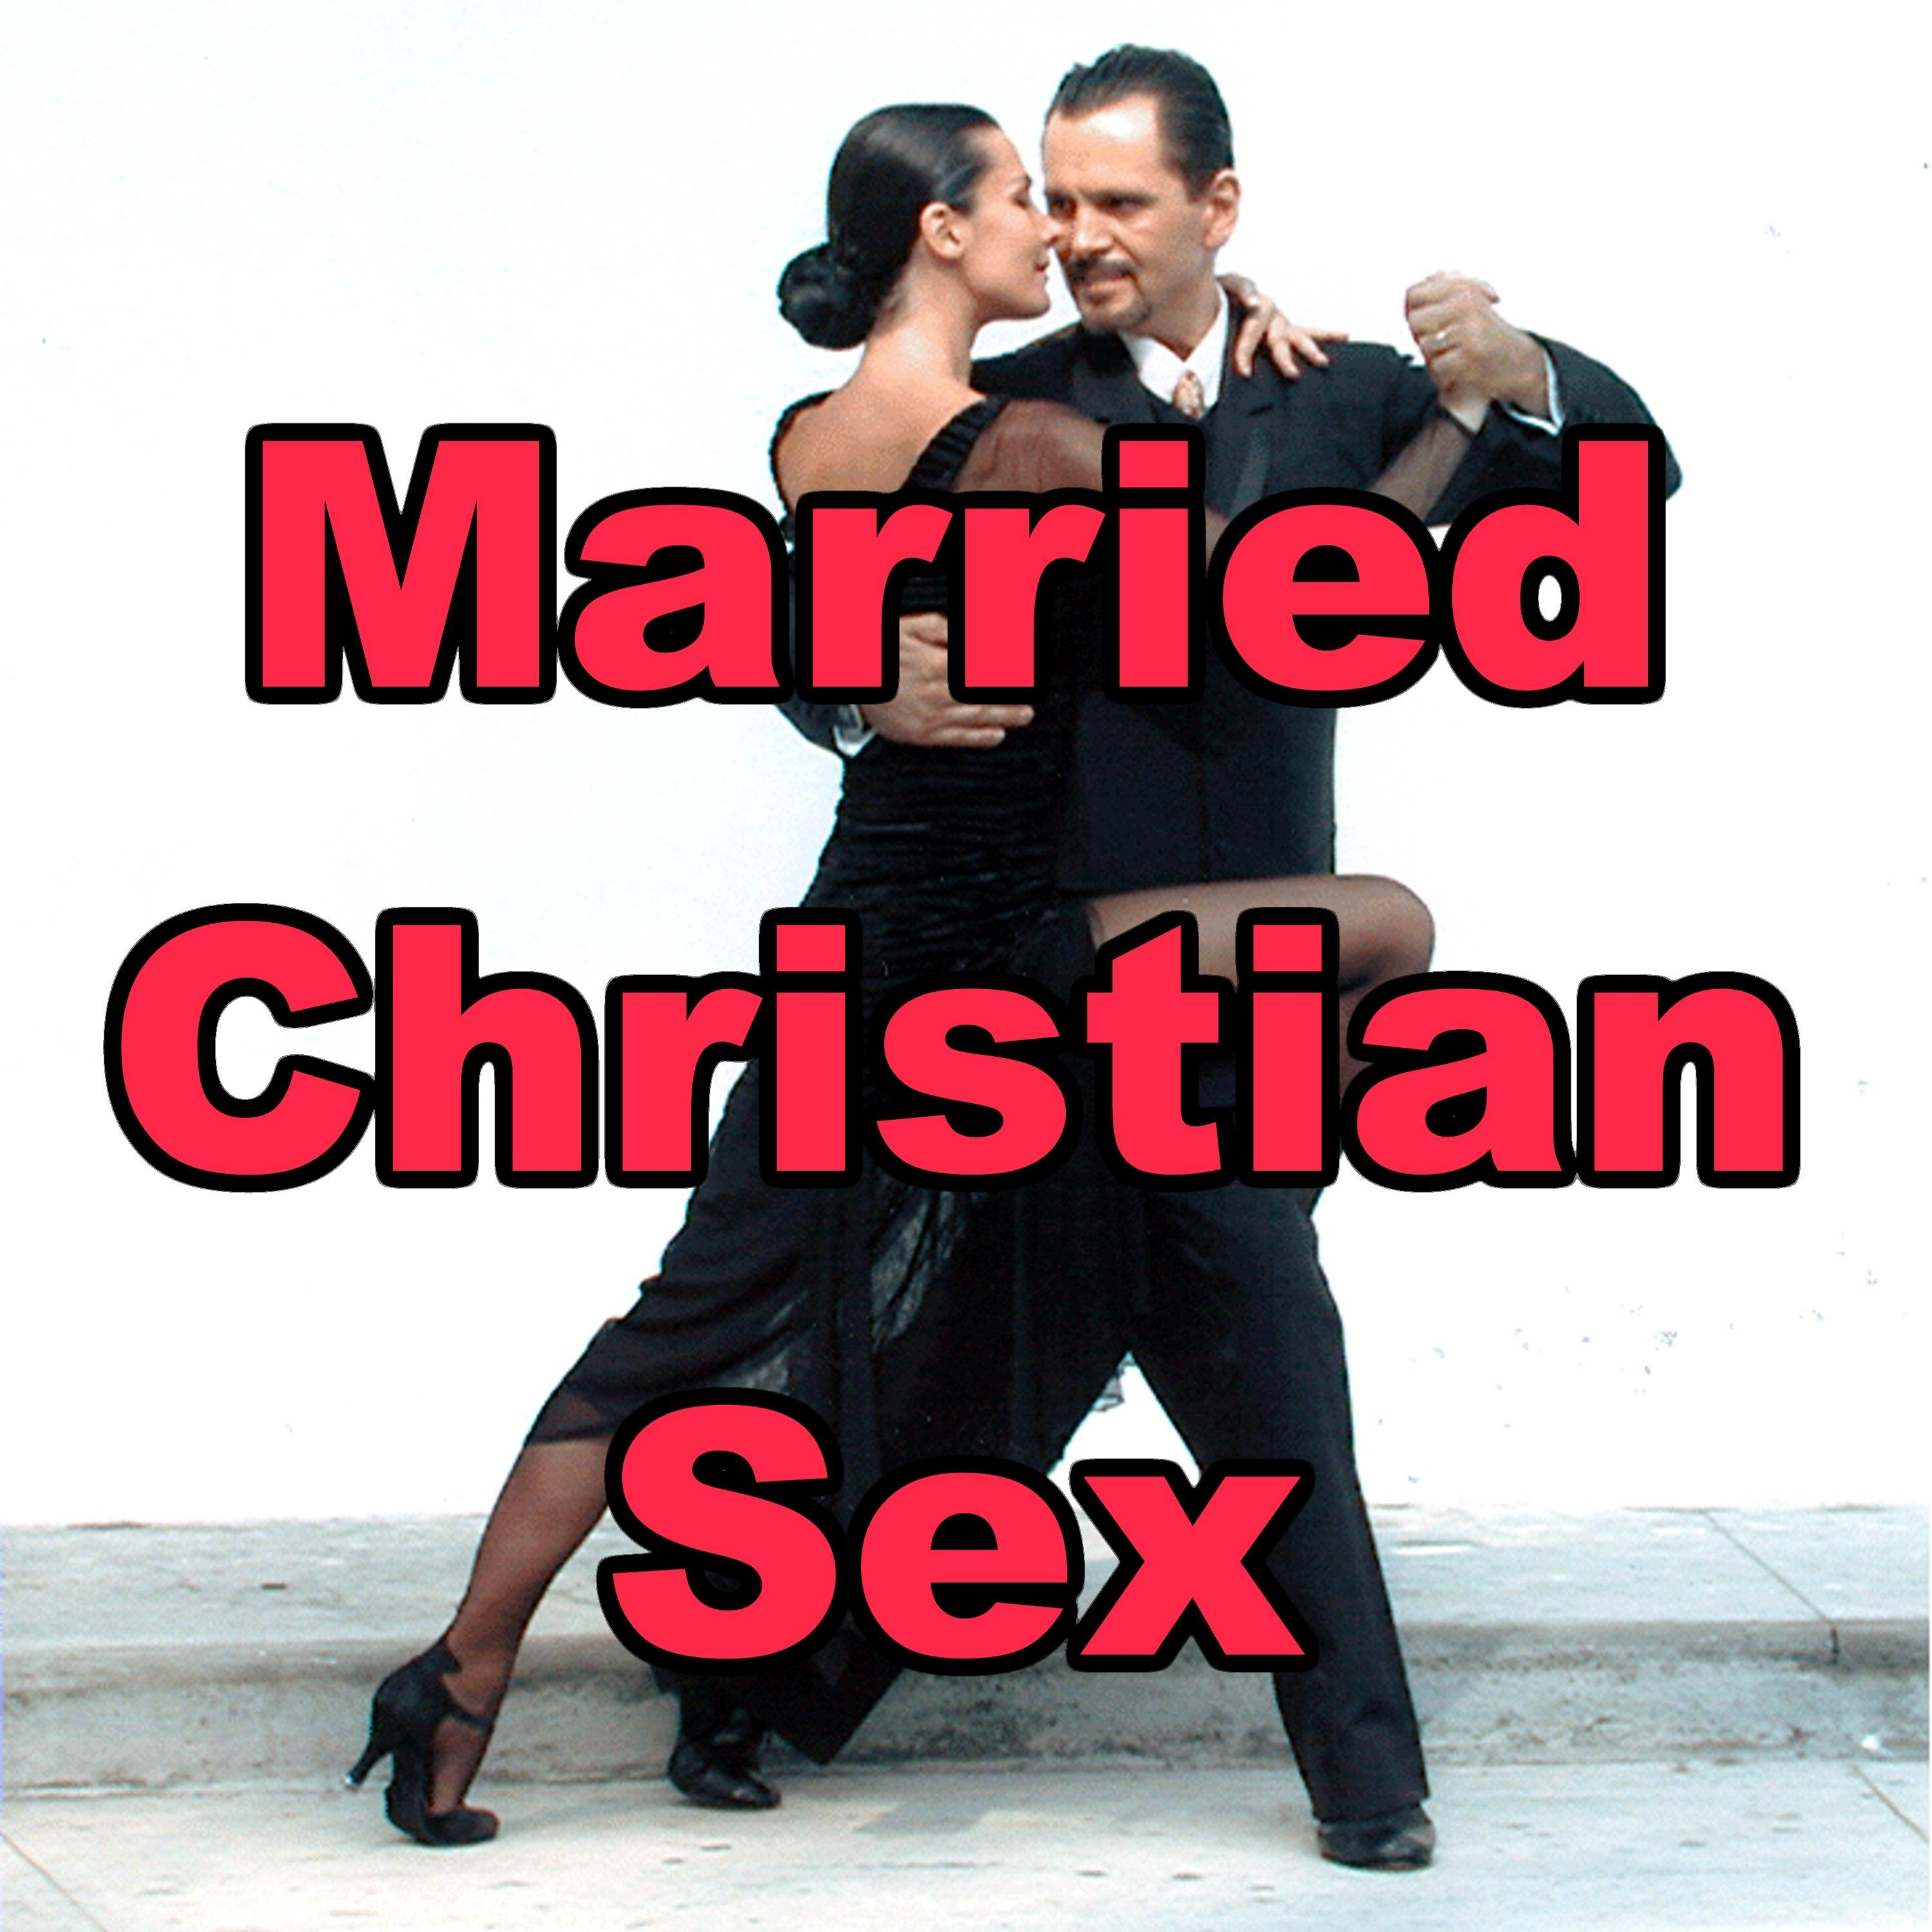 Married Christian Sex